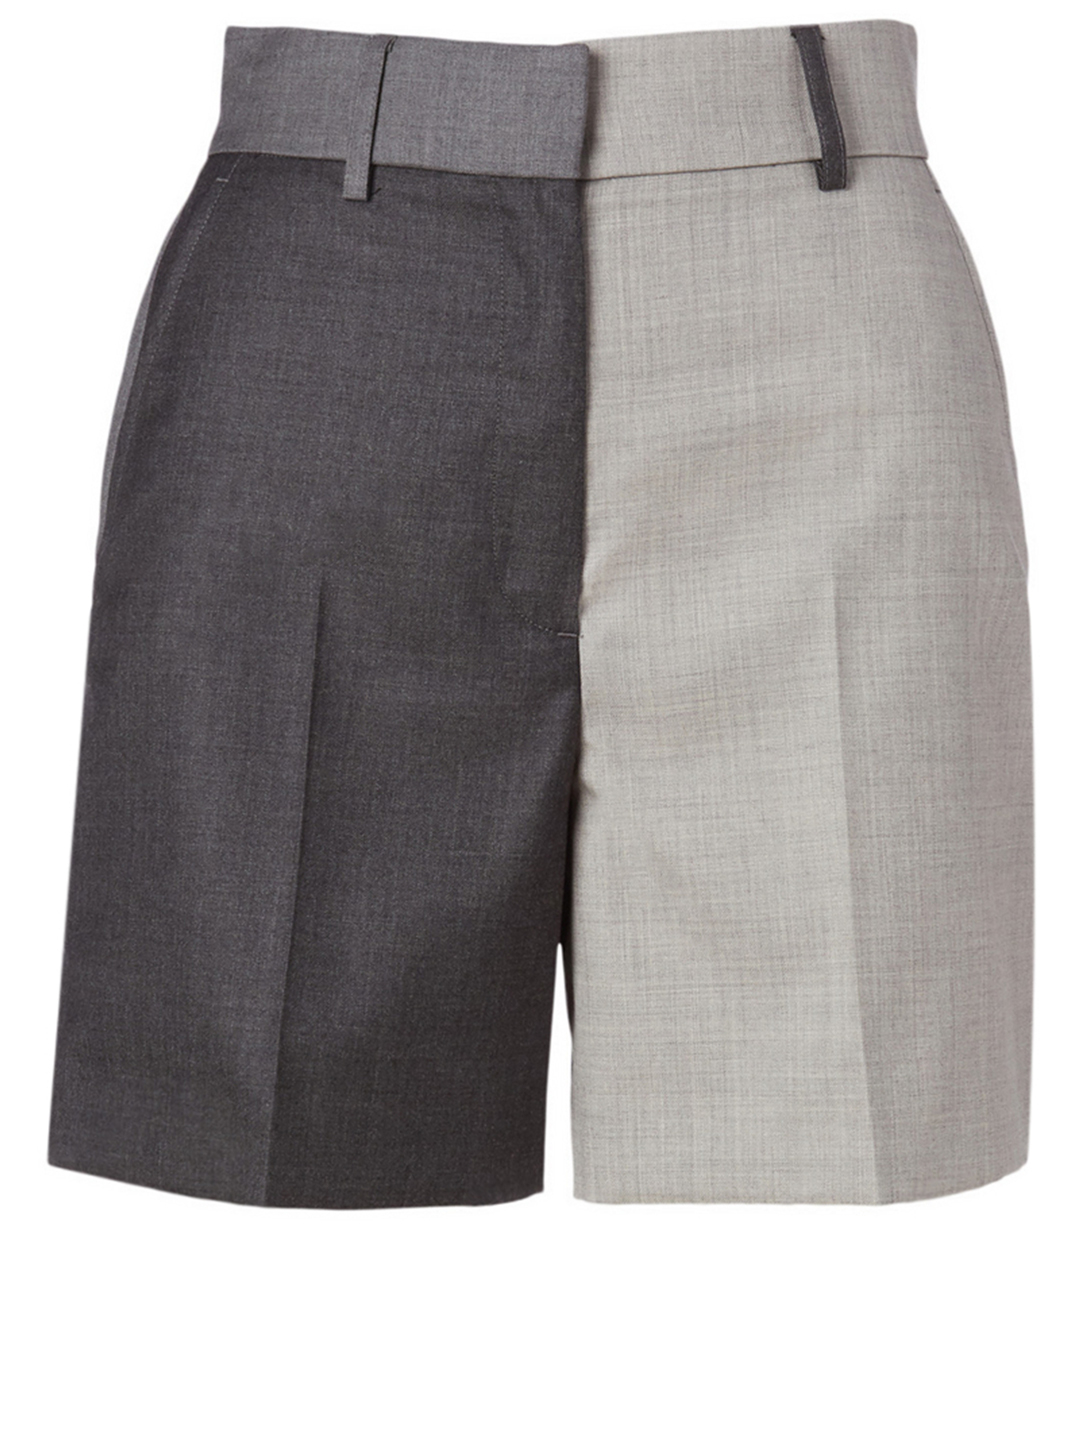 Wool High Waisted Shorts by Holt Renfrew